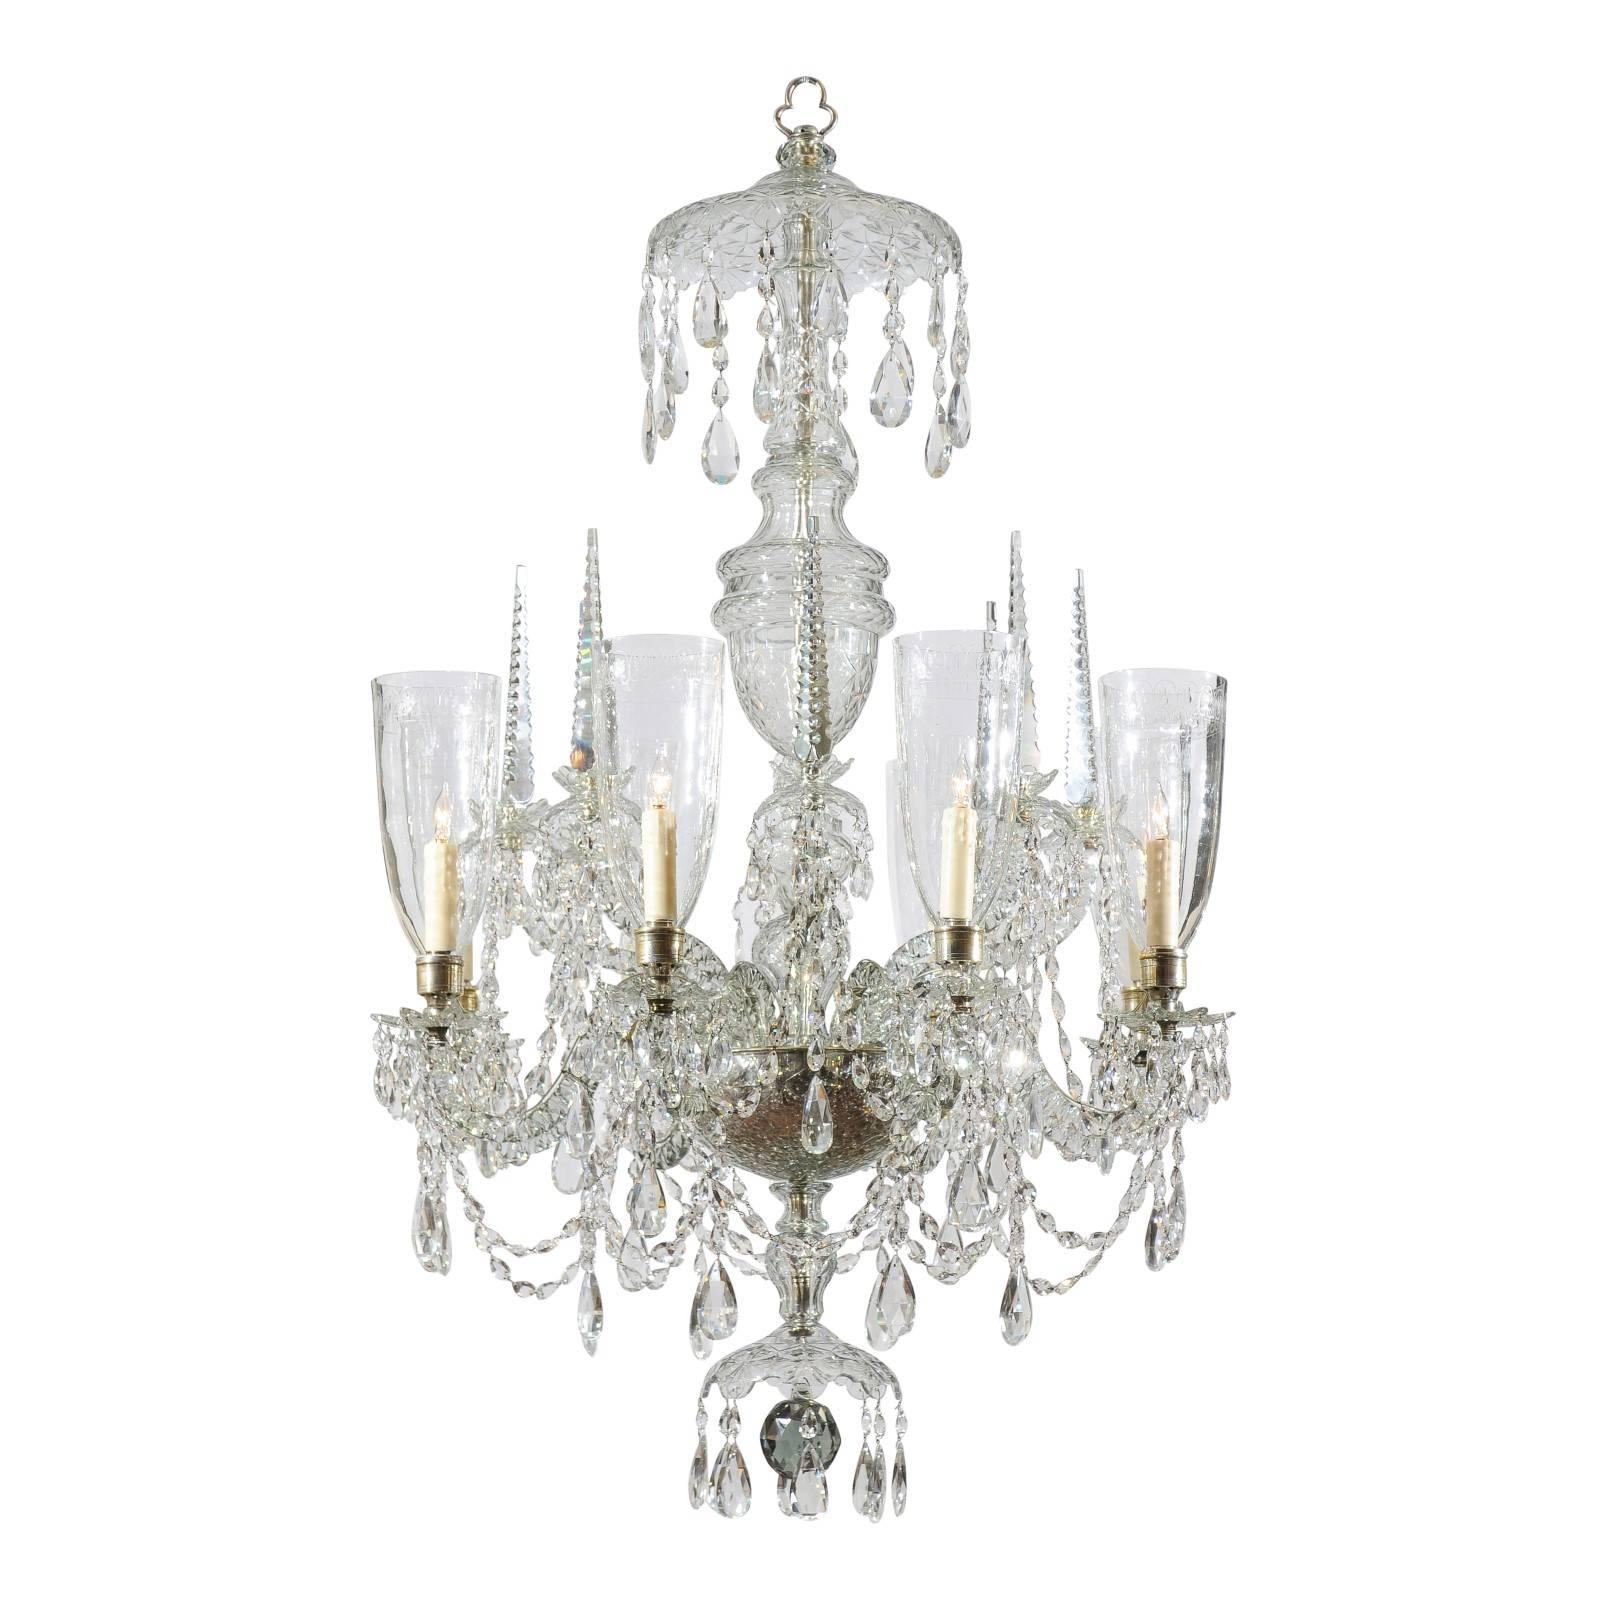 Waterford Crystal Chandeliers and Pendants 9 For Sale at 1stdibs